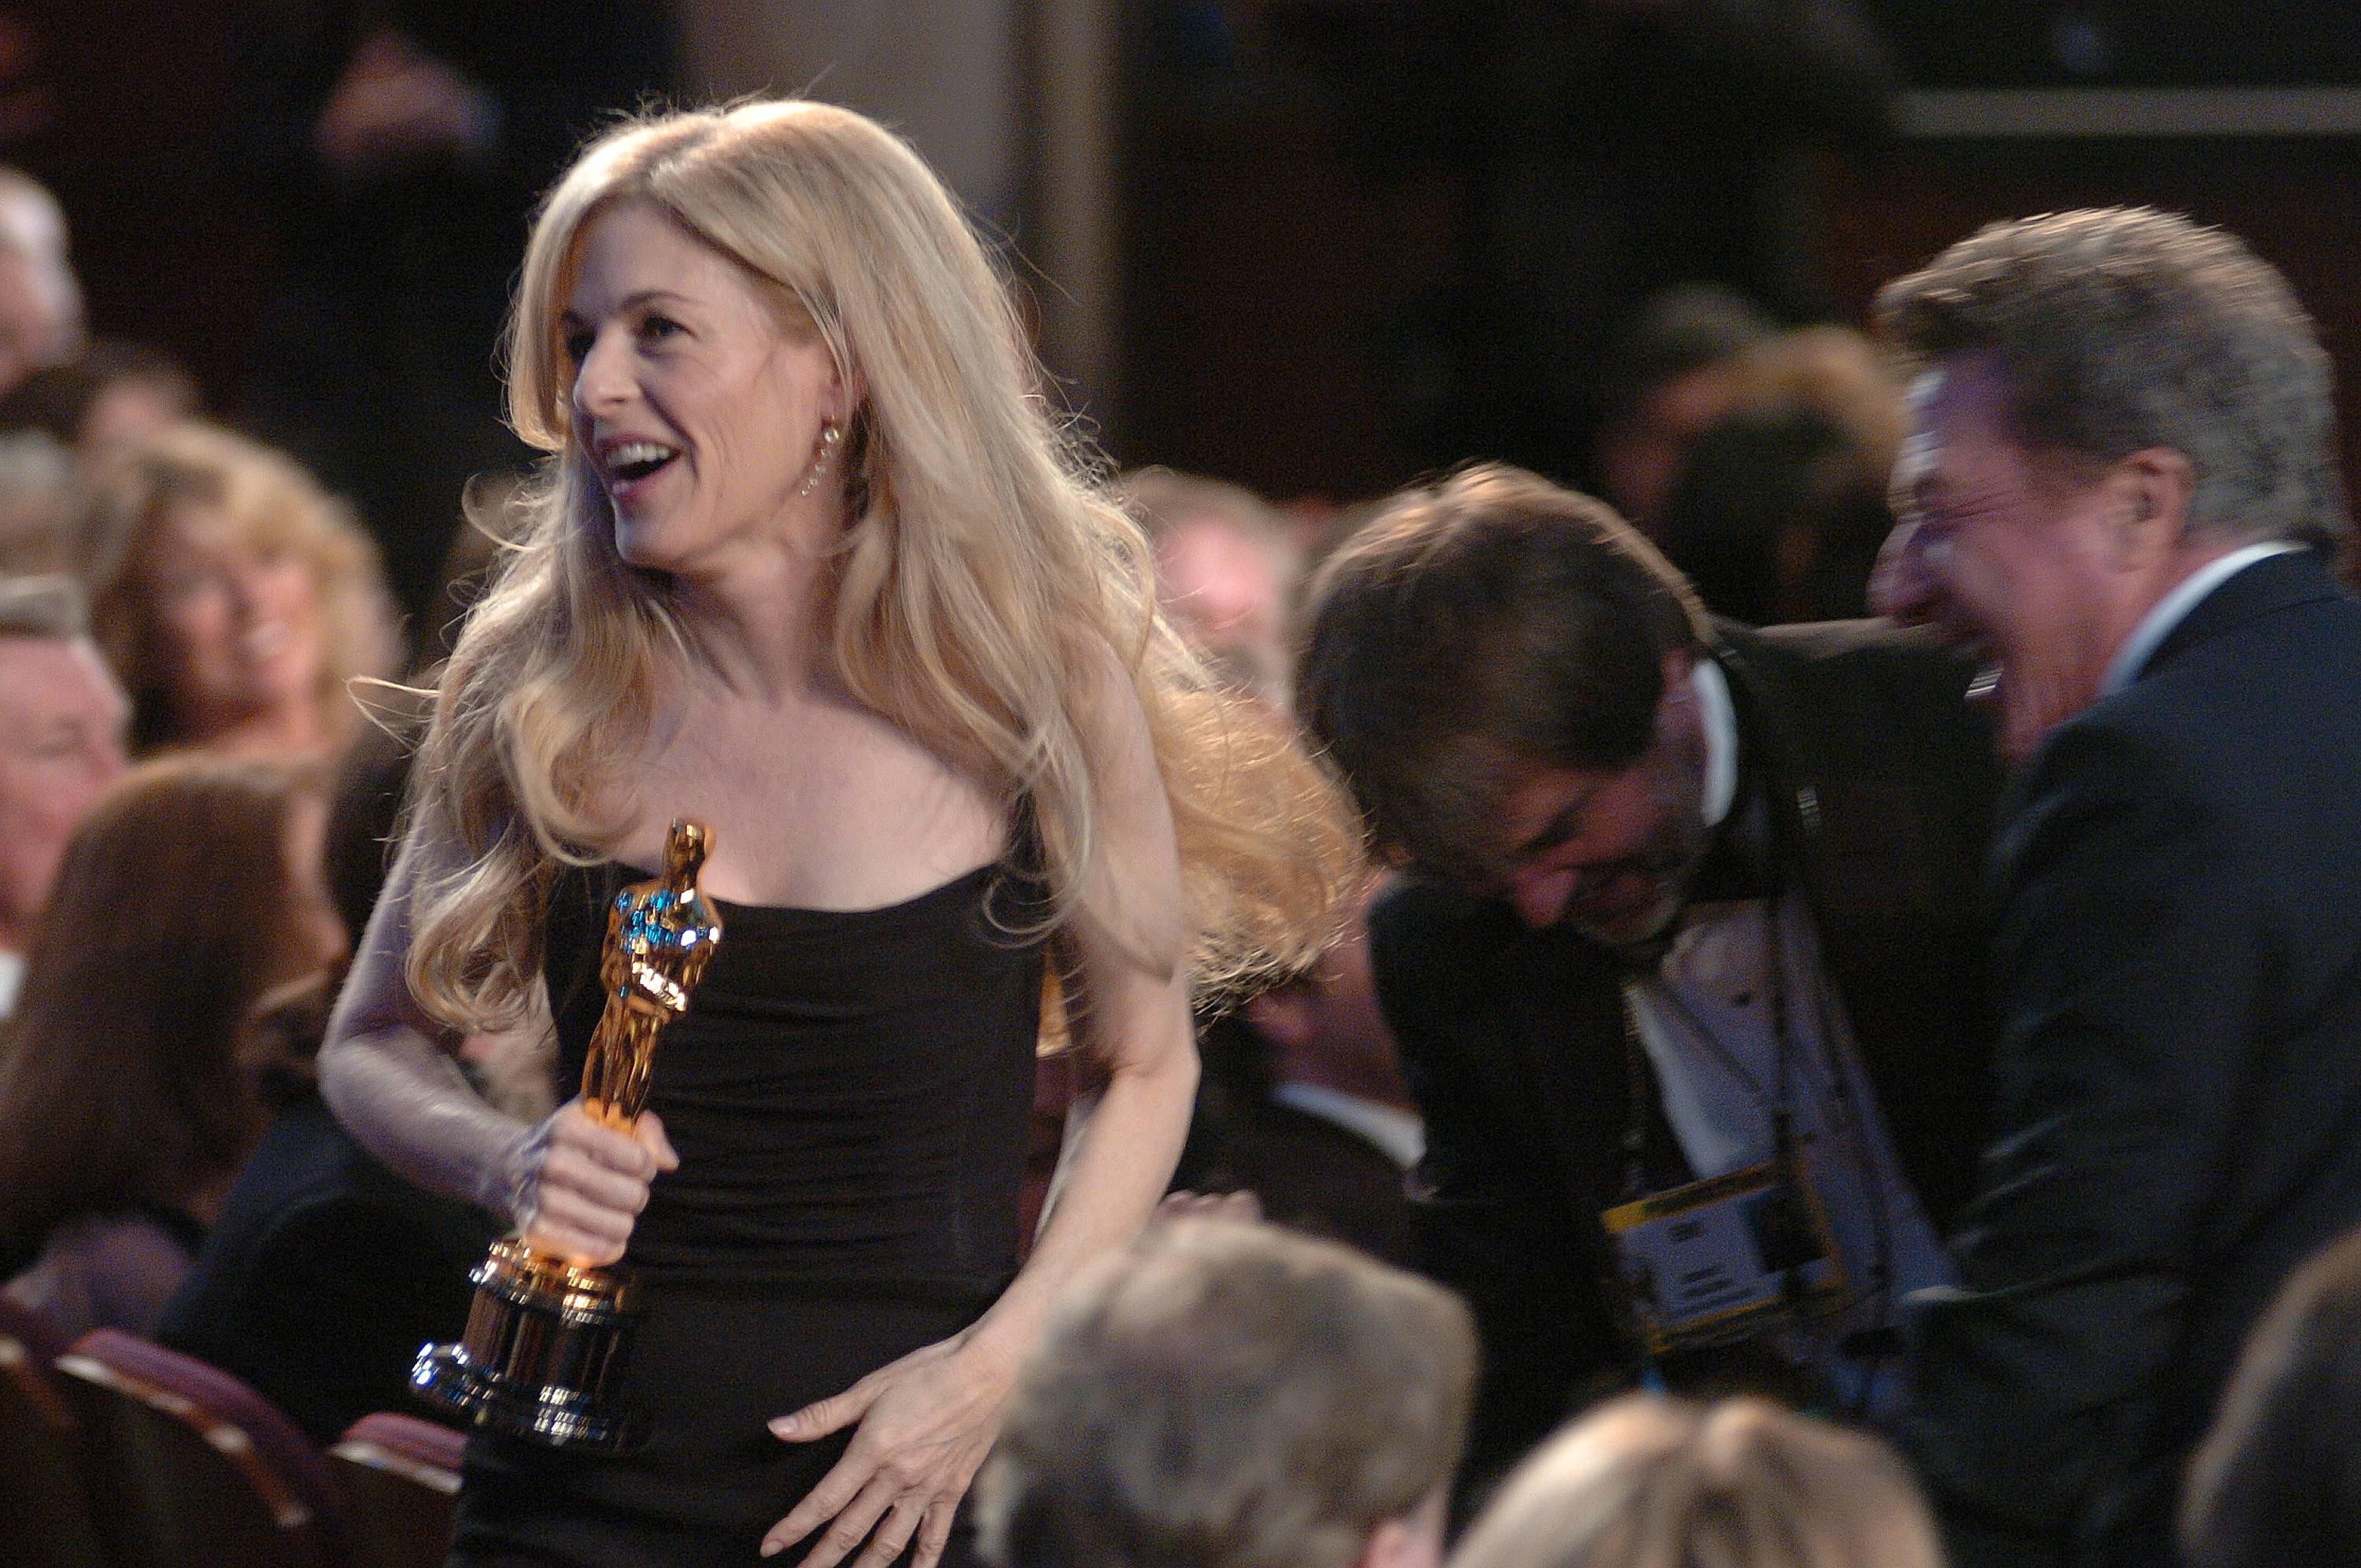 Valli O'Reilly accepts the Academy Award for Achievement in Makeup.